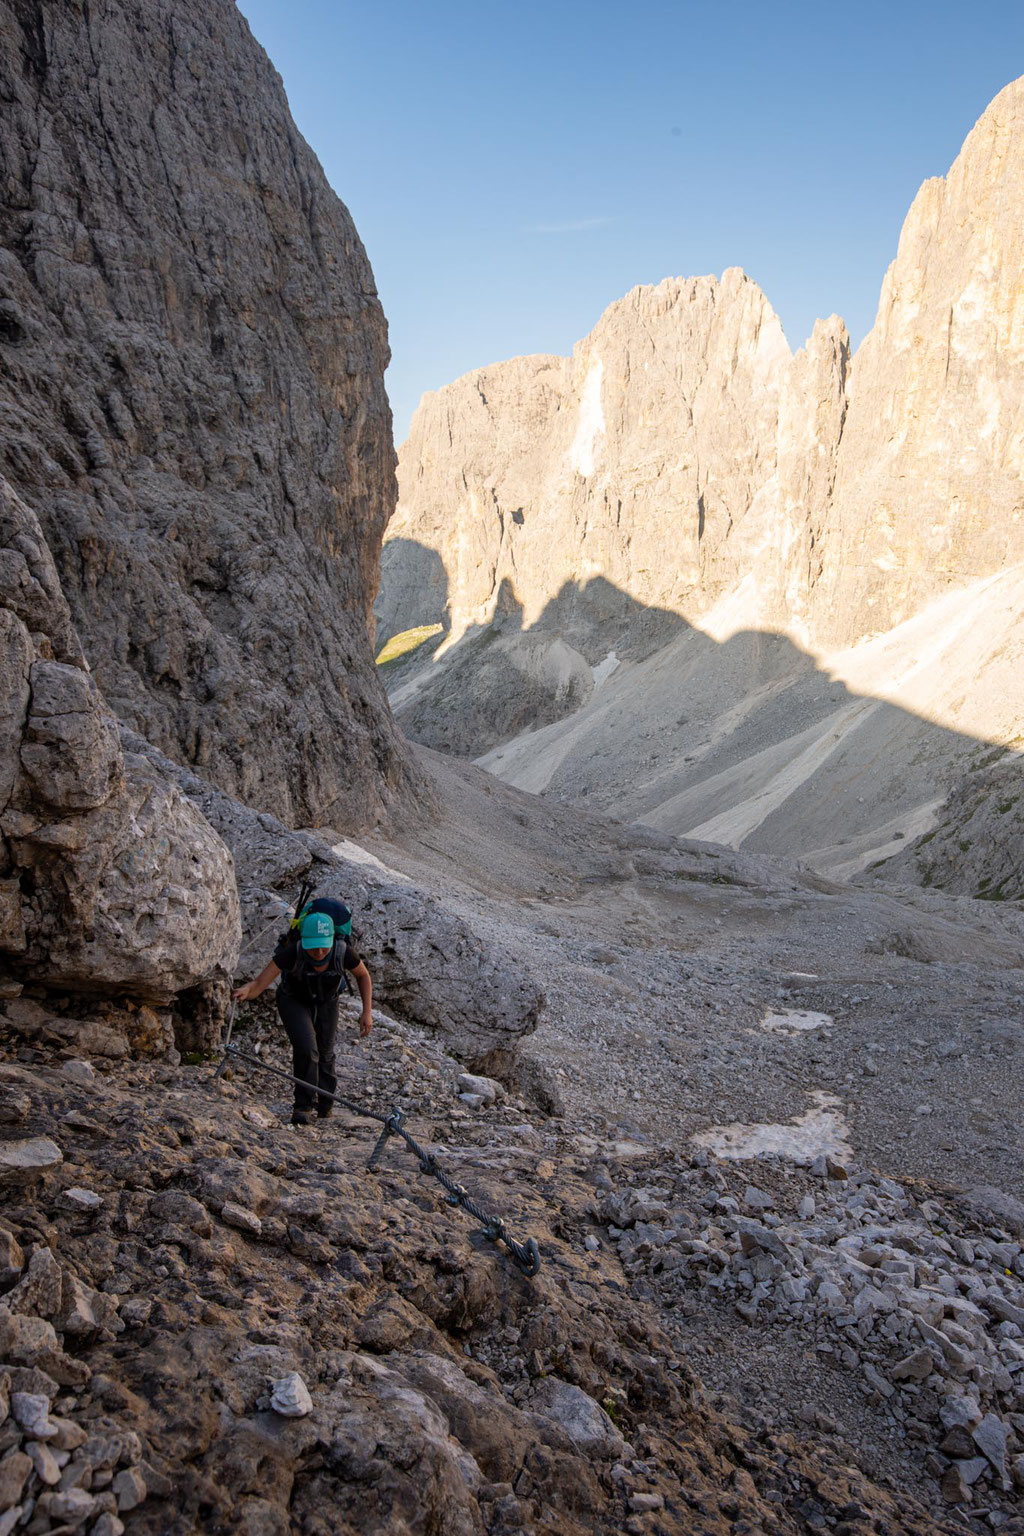 Day 4 of the traverse. Heading towards Passo delle Lede